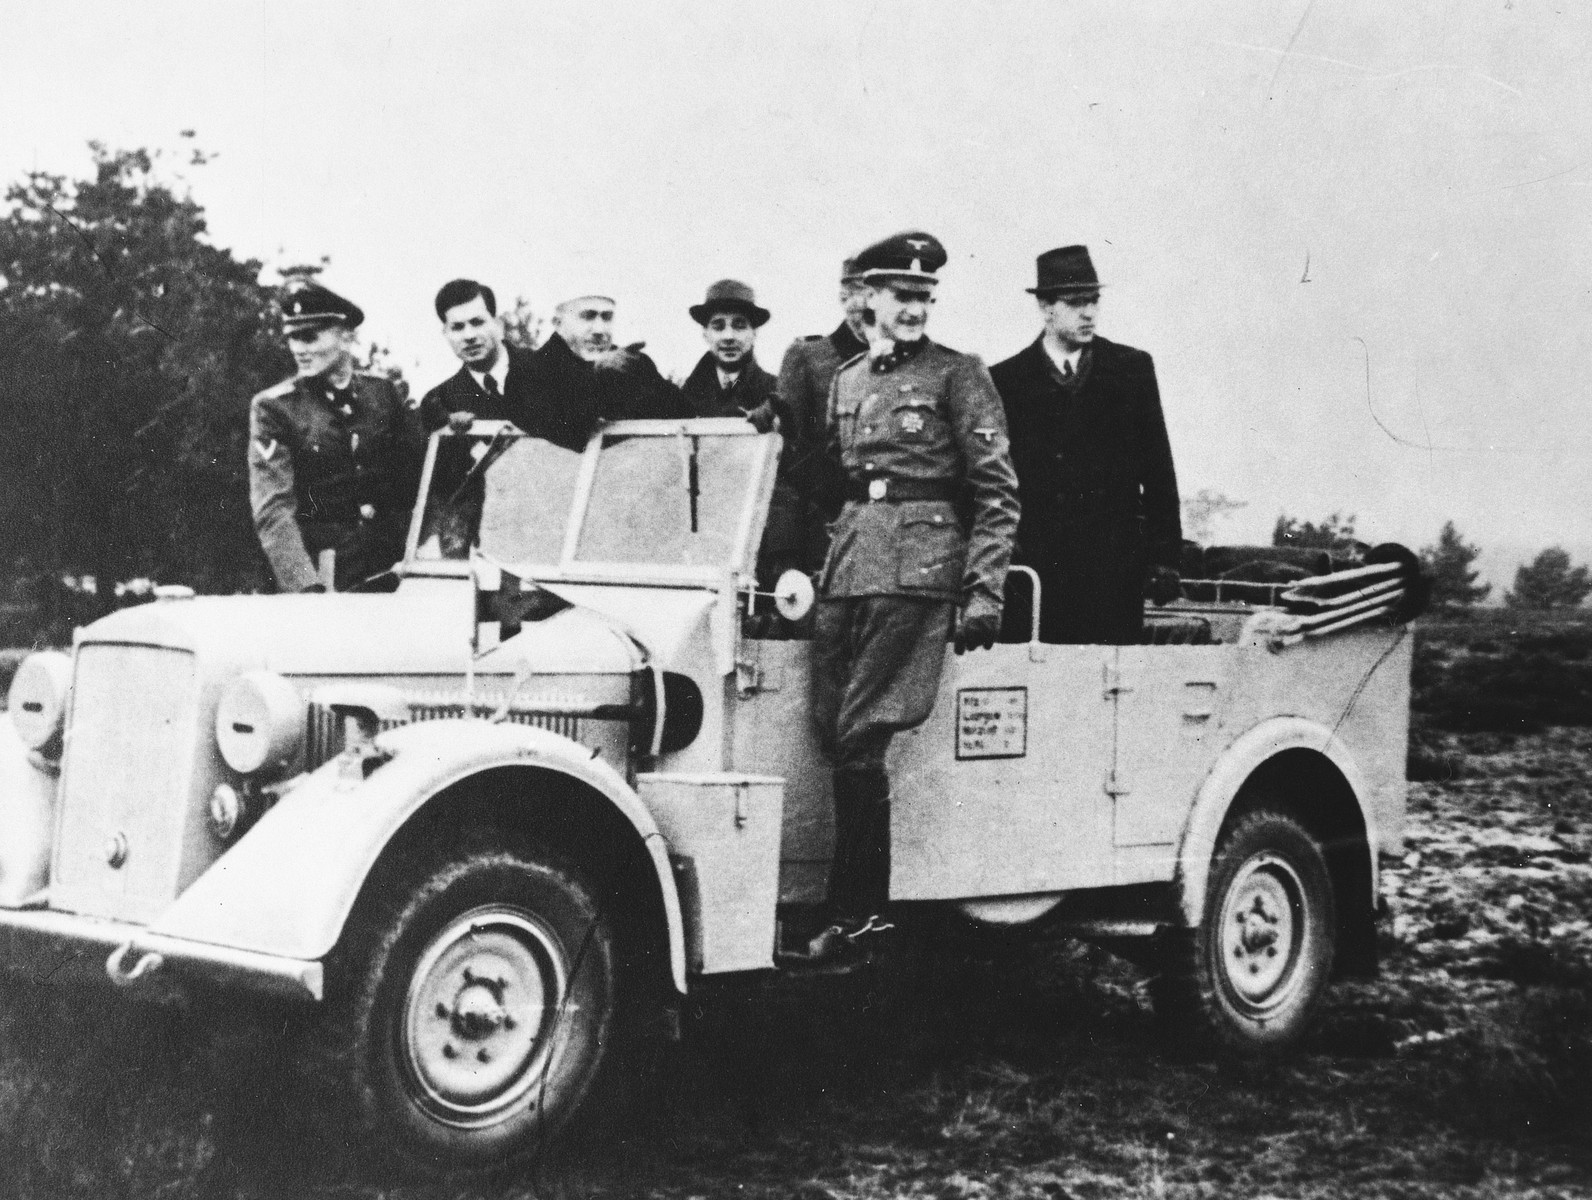 Hajj Amin al-Husayni rides in an open jeep in the company of German SS and civilian officials during an official visit to Bosnia.